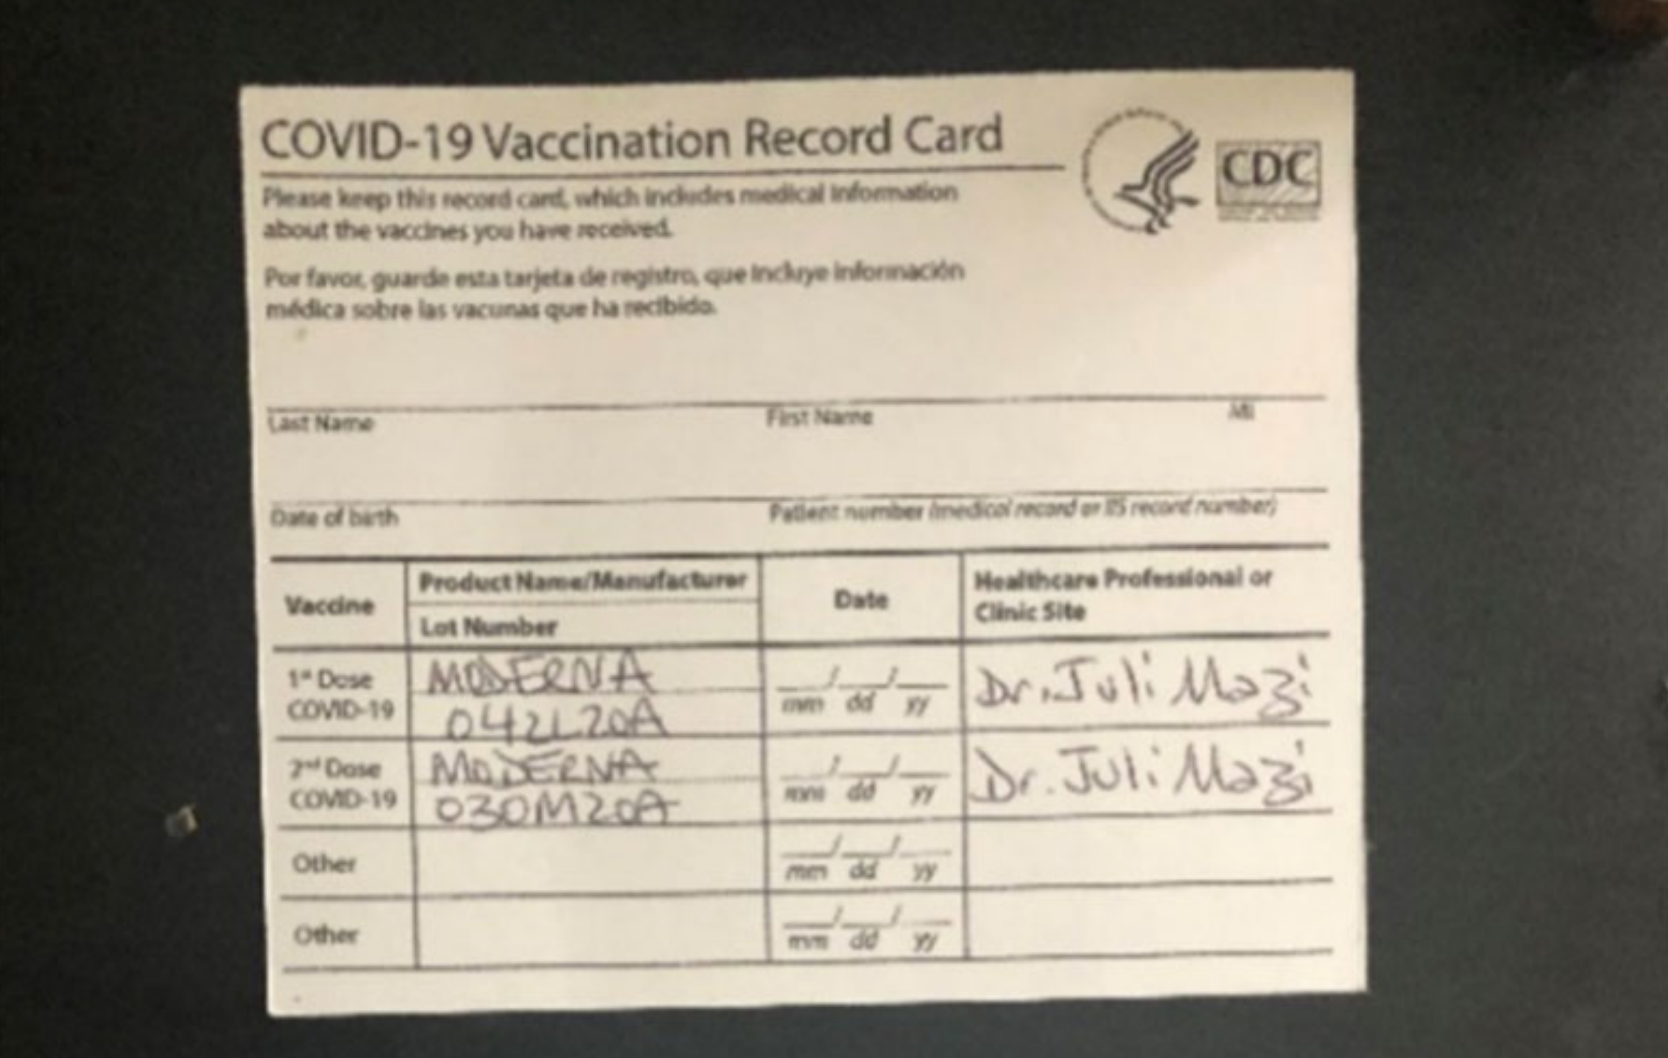 A CDC card allegedly given out by homeopathic doctor Juli A. Mazi. (U.S. Department of Justice)